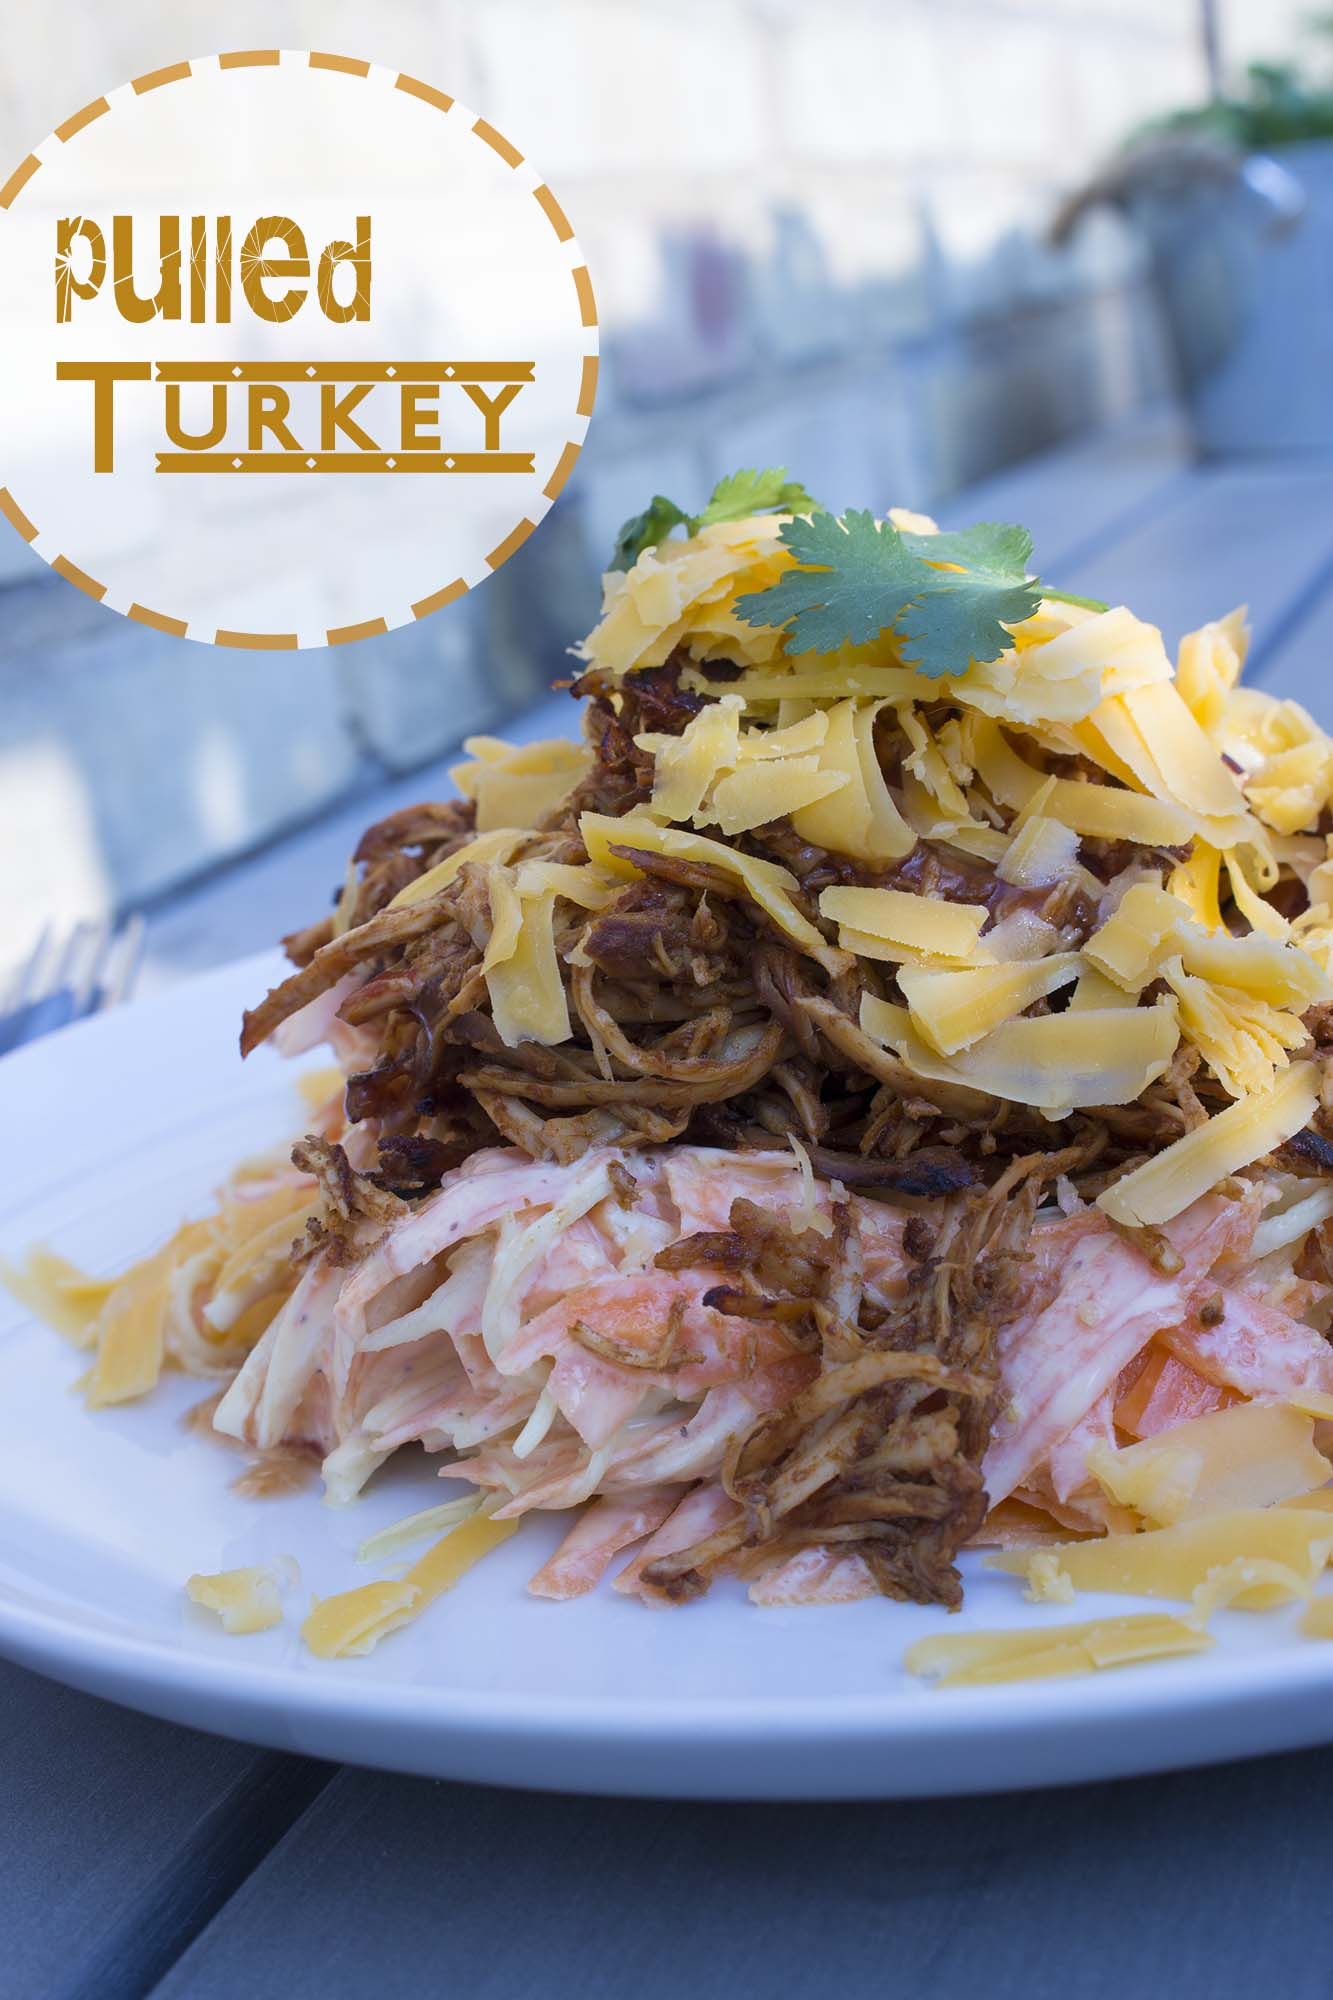 Pulled Turkey